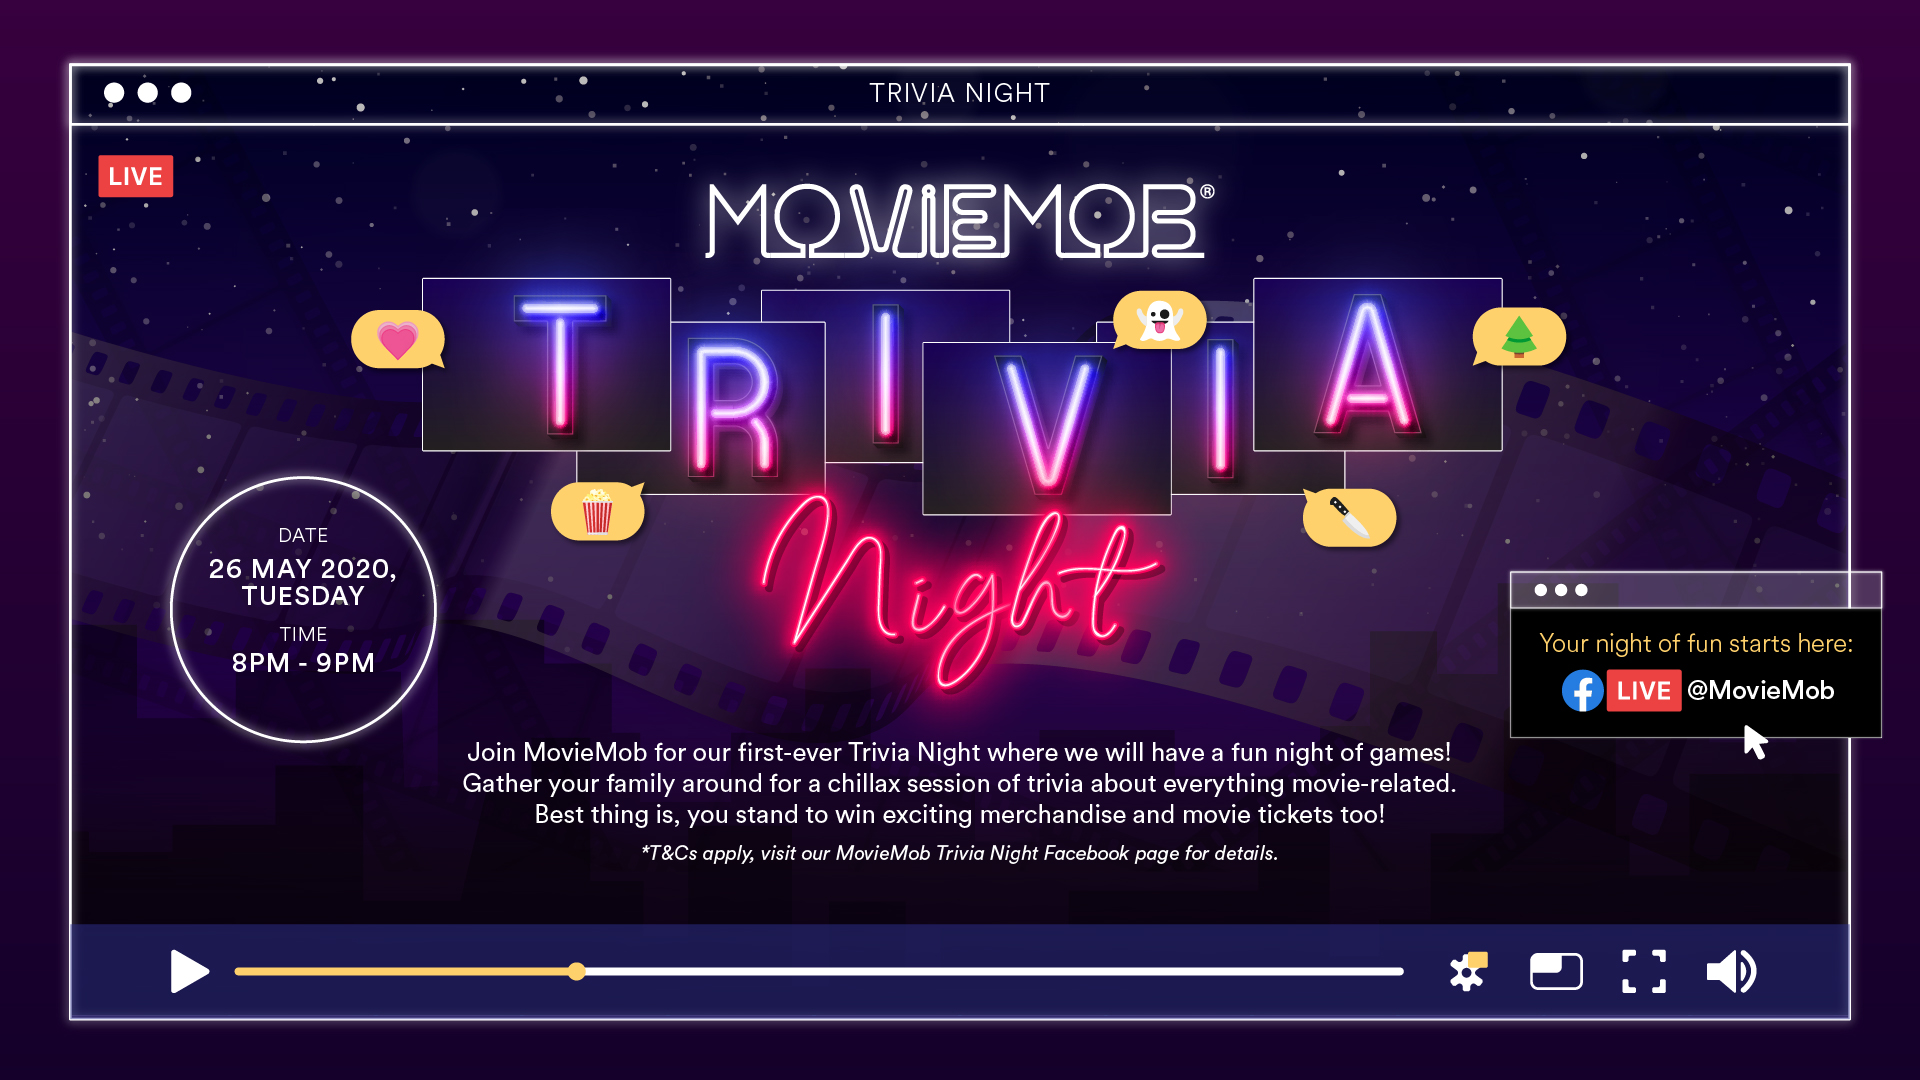 MovieMob Trivia Night